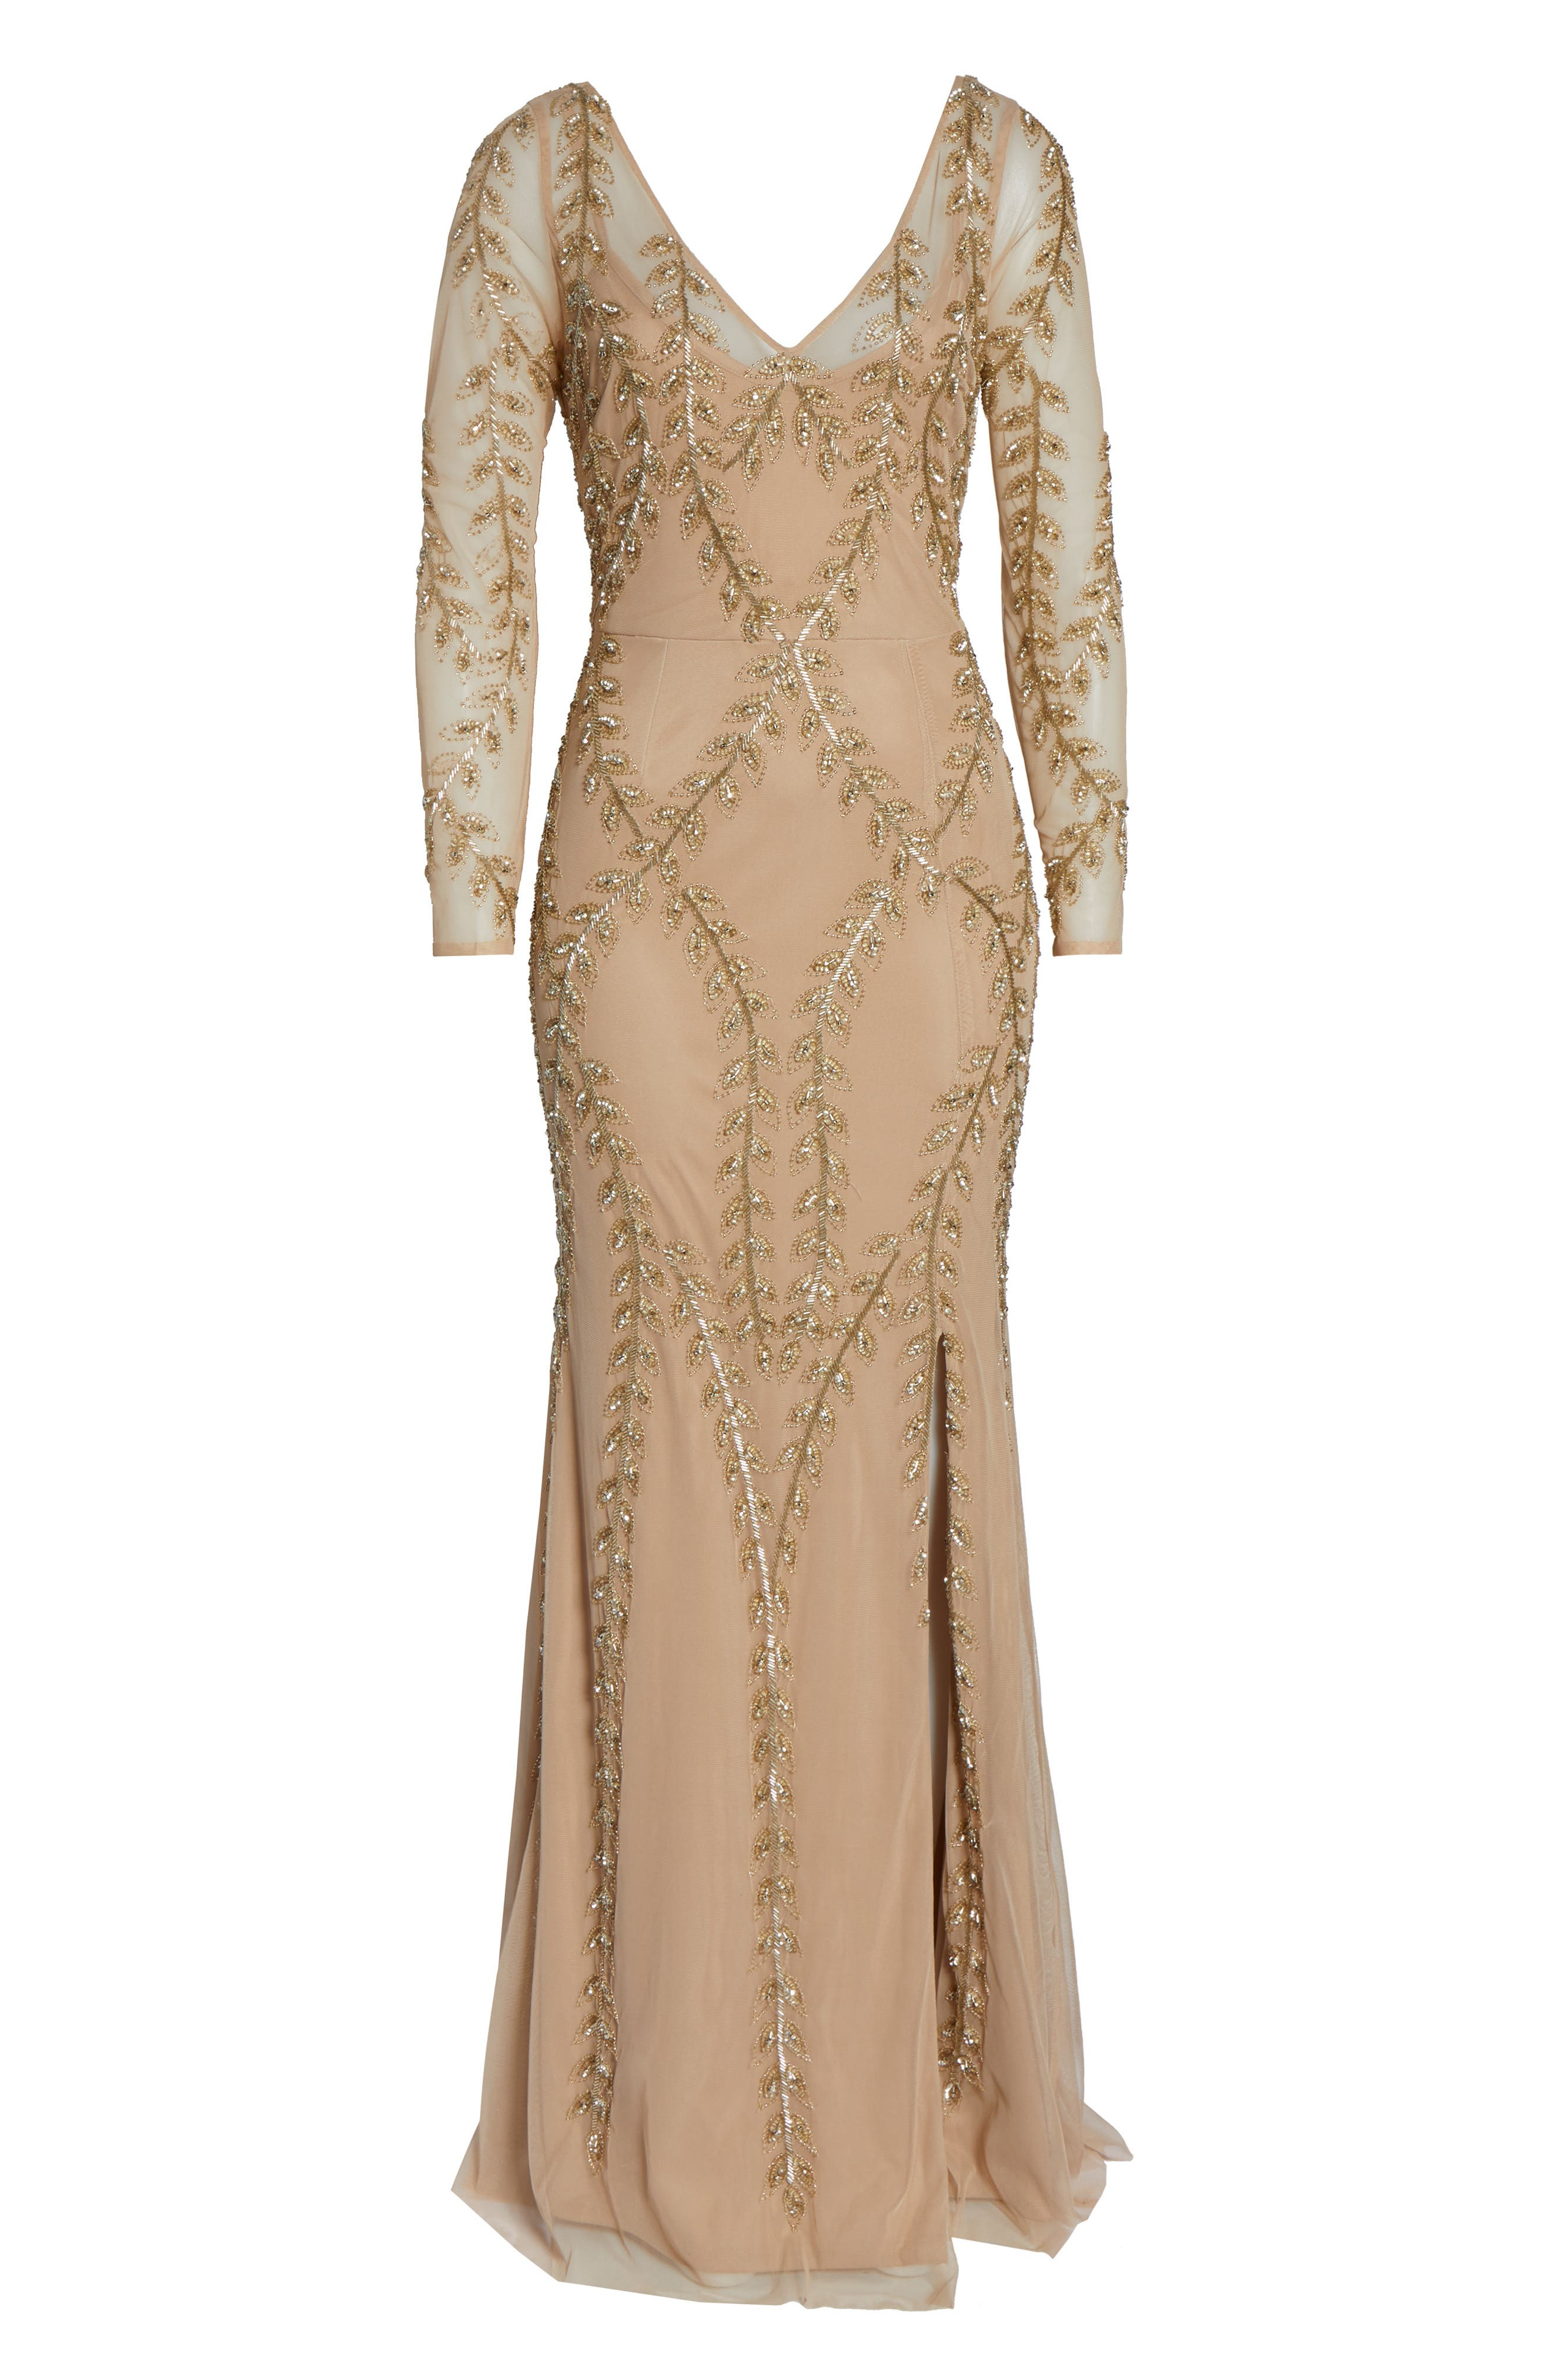 ADRIANNA PAPELL,                             Fern Beaded Gown,                             Alternate thumbnail 7, color,                             CHAMPAGNE/ GOLD